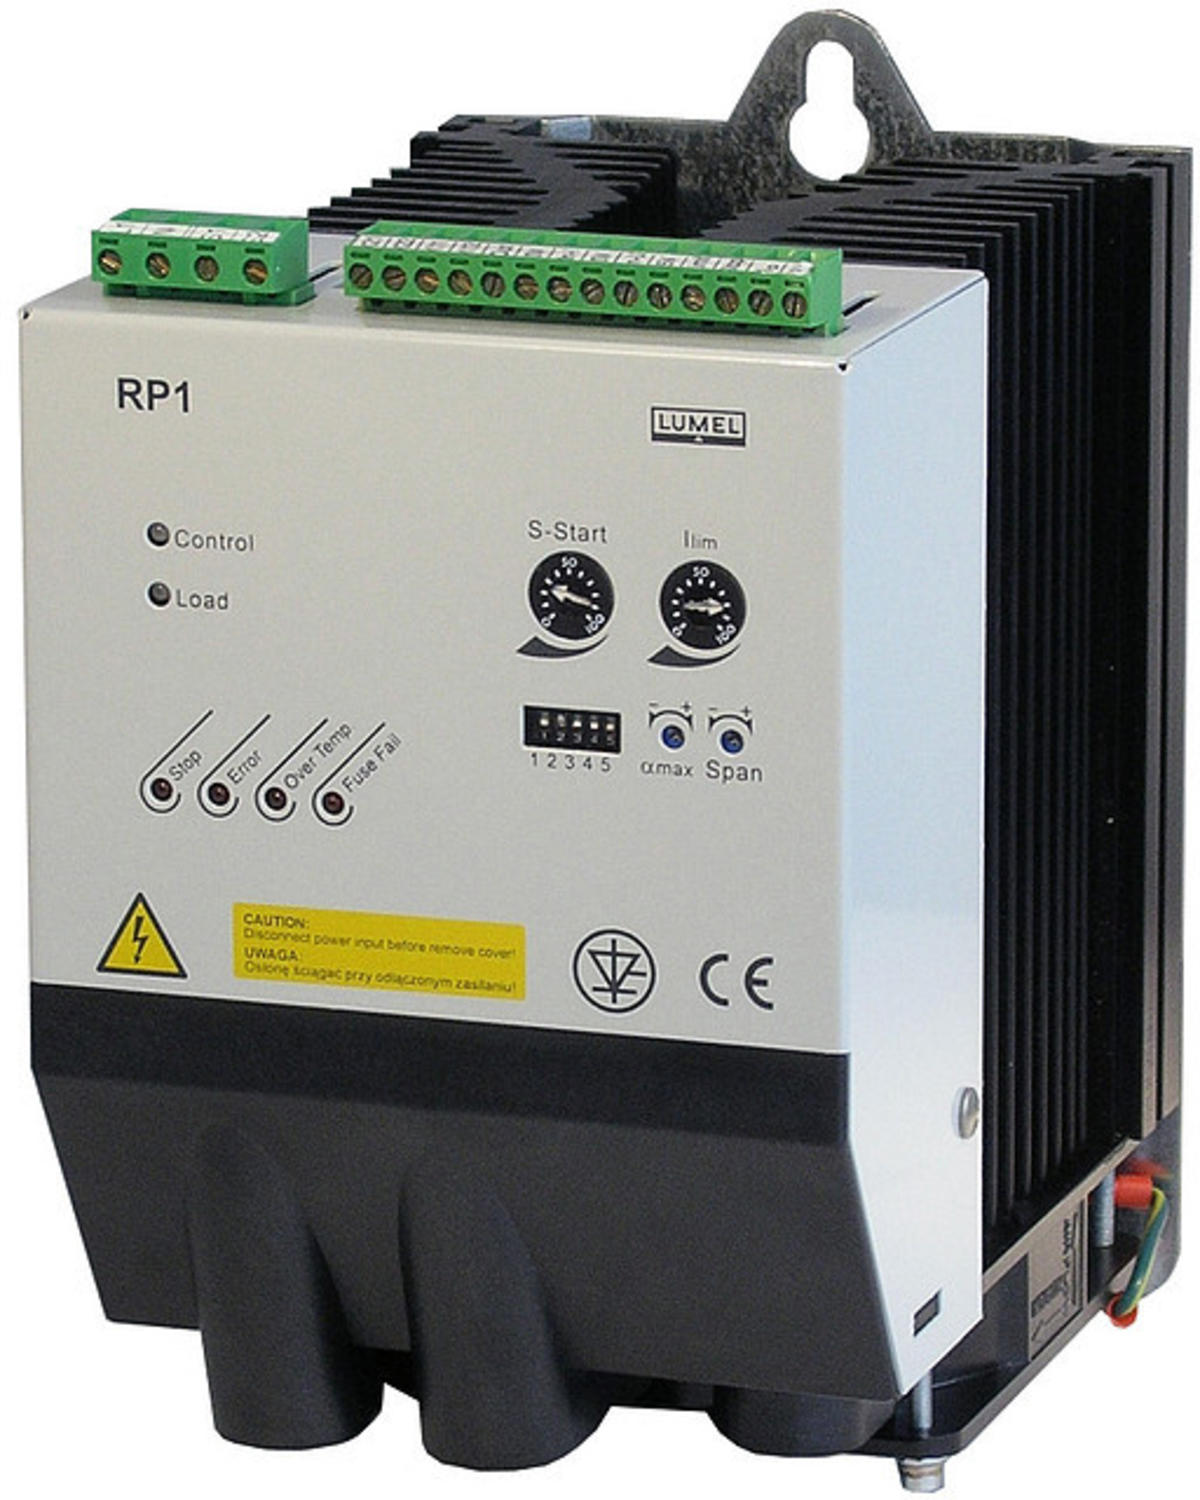 Lumel - RP1 single phase power controller